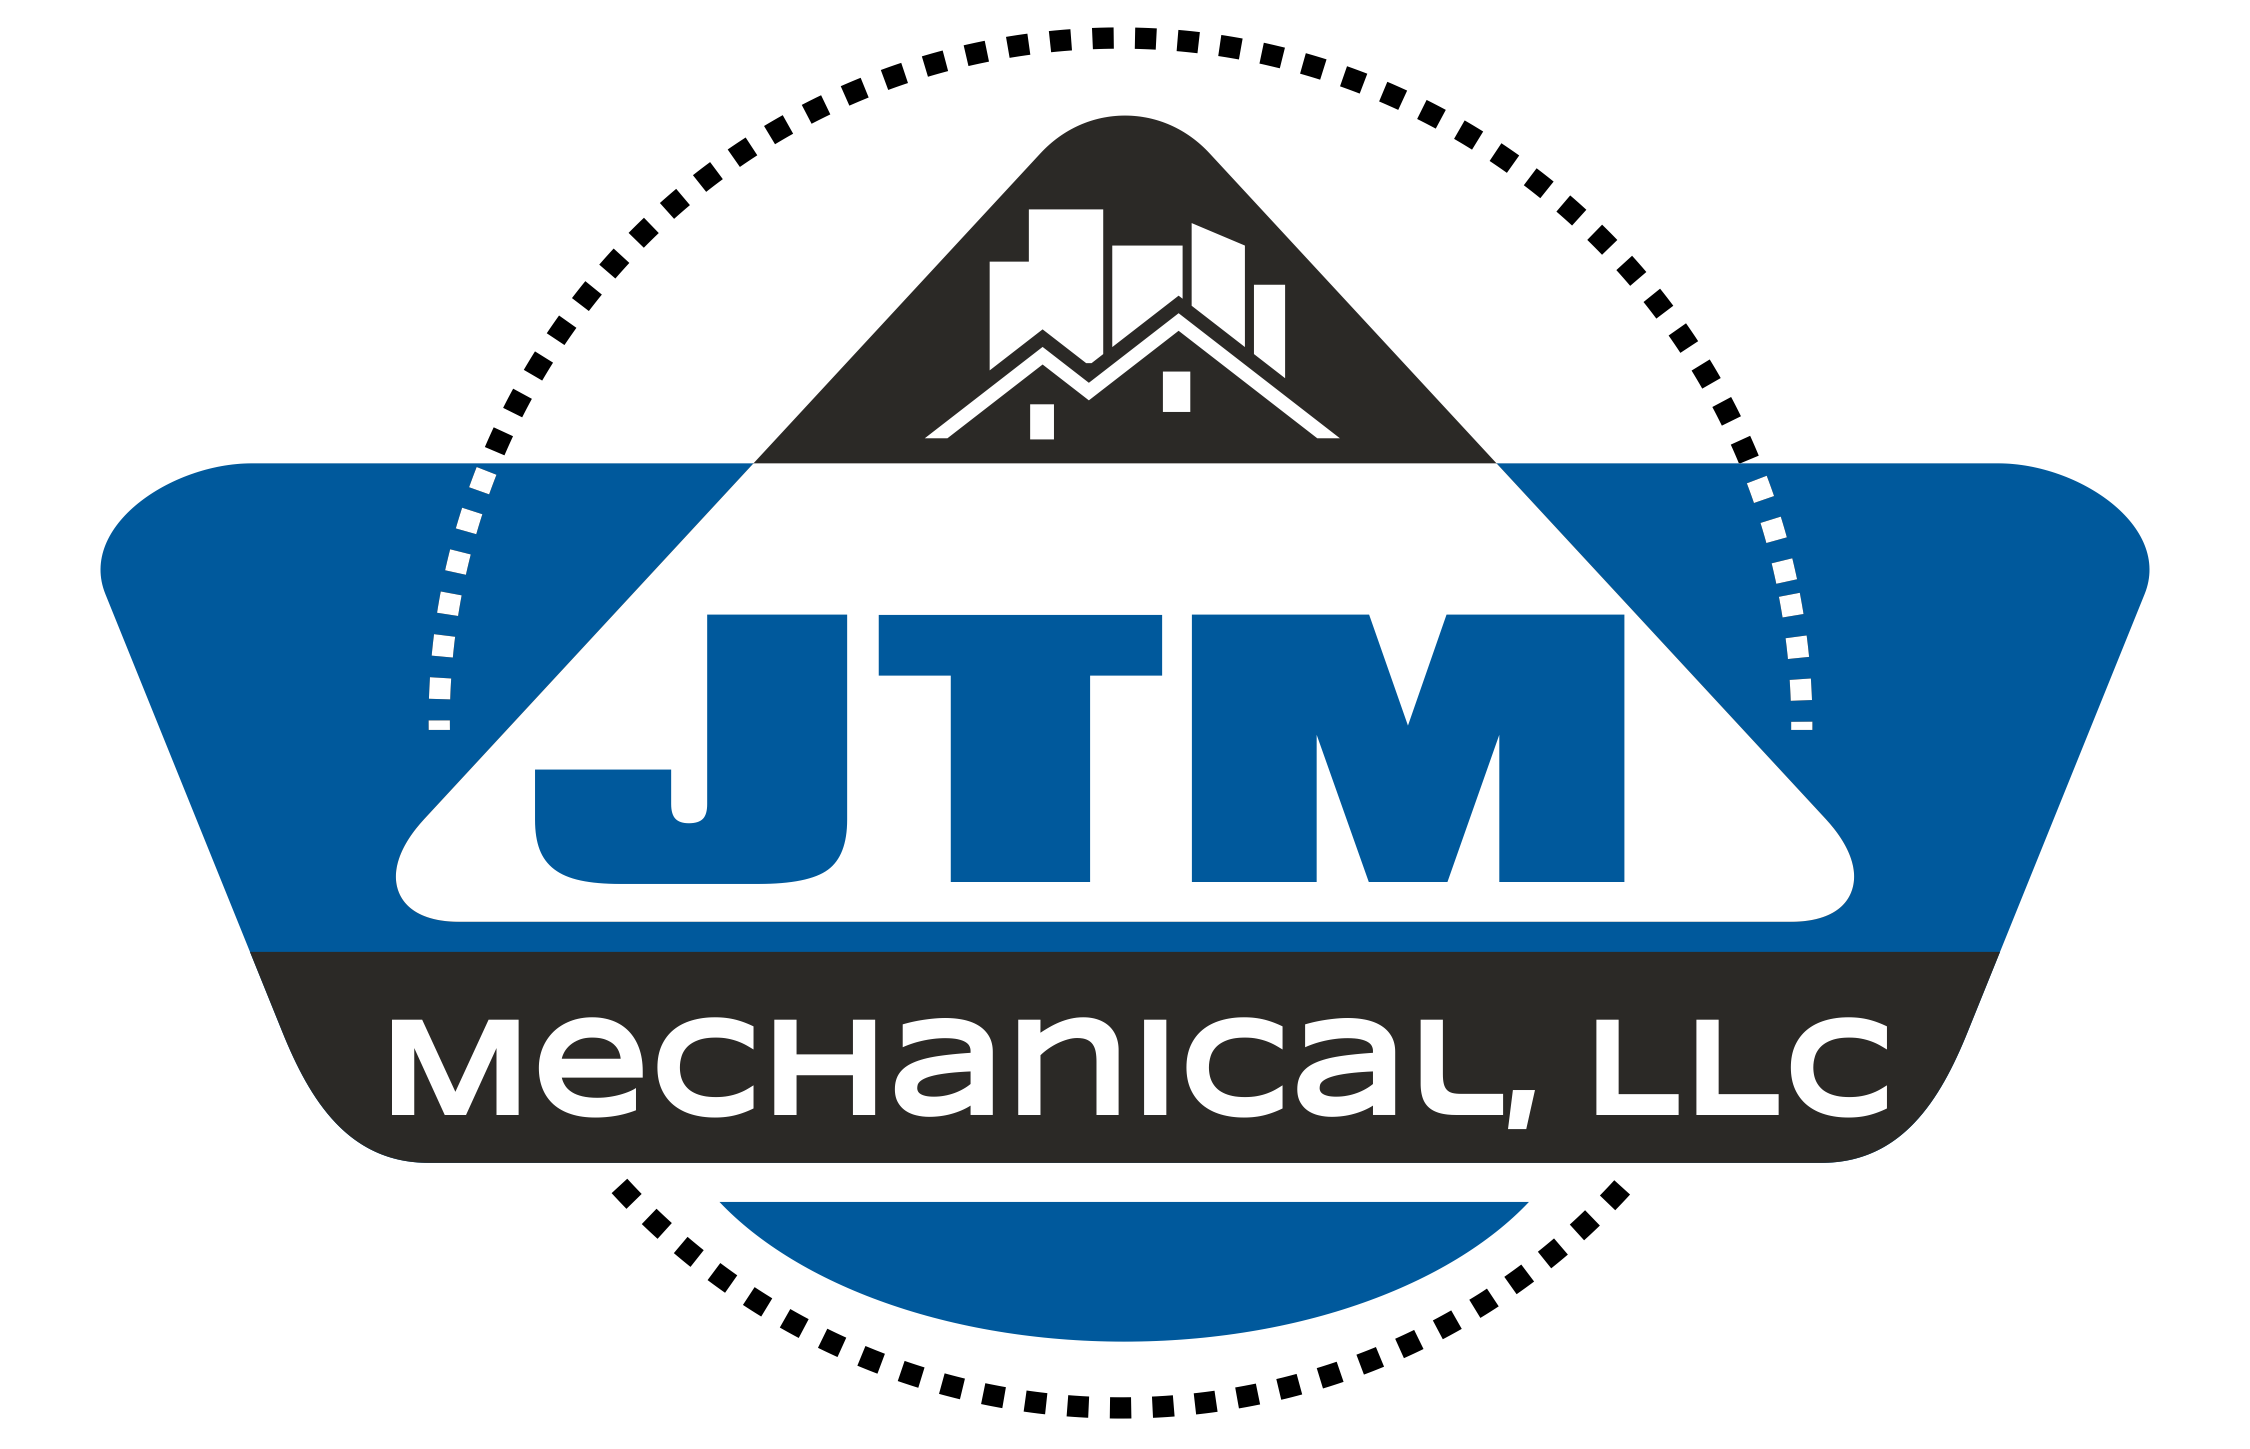 JTM Mechanical LLC